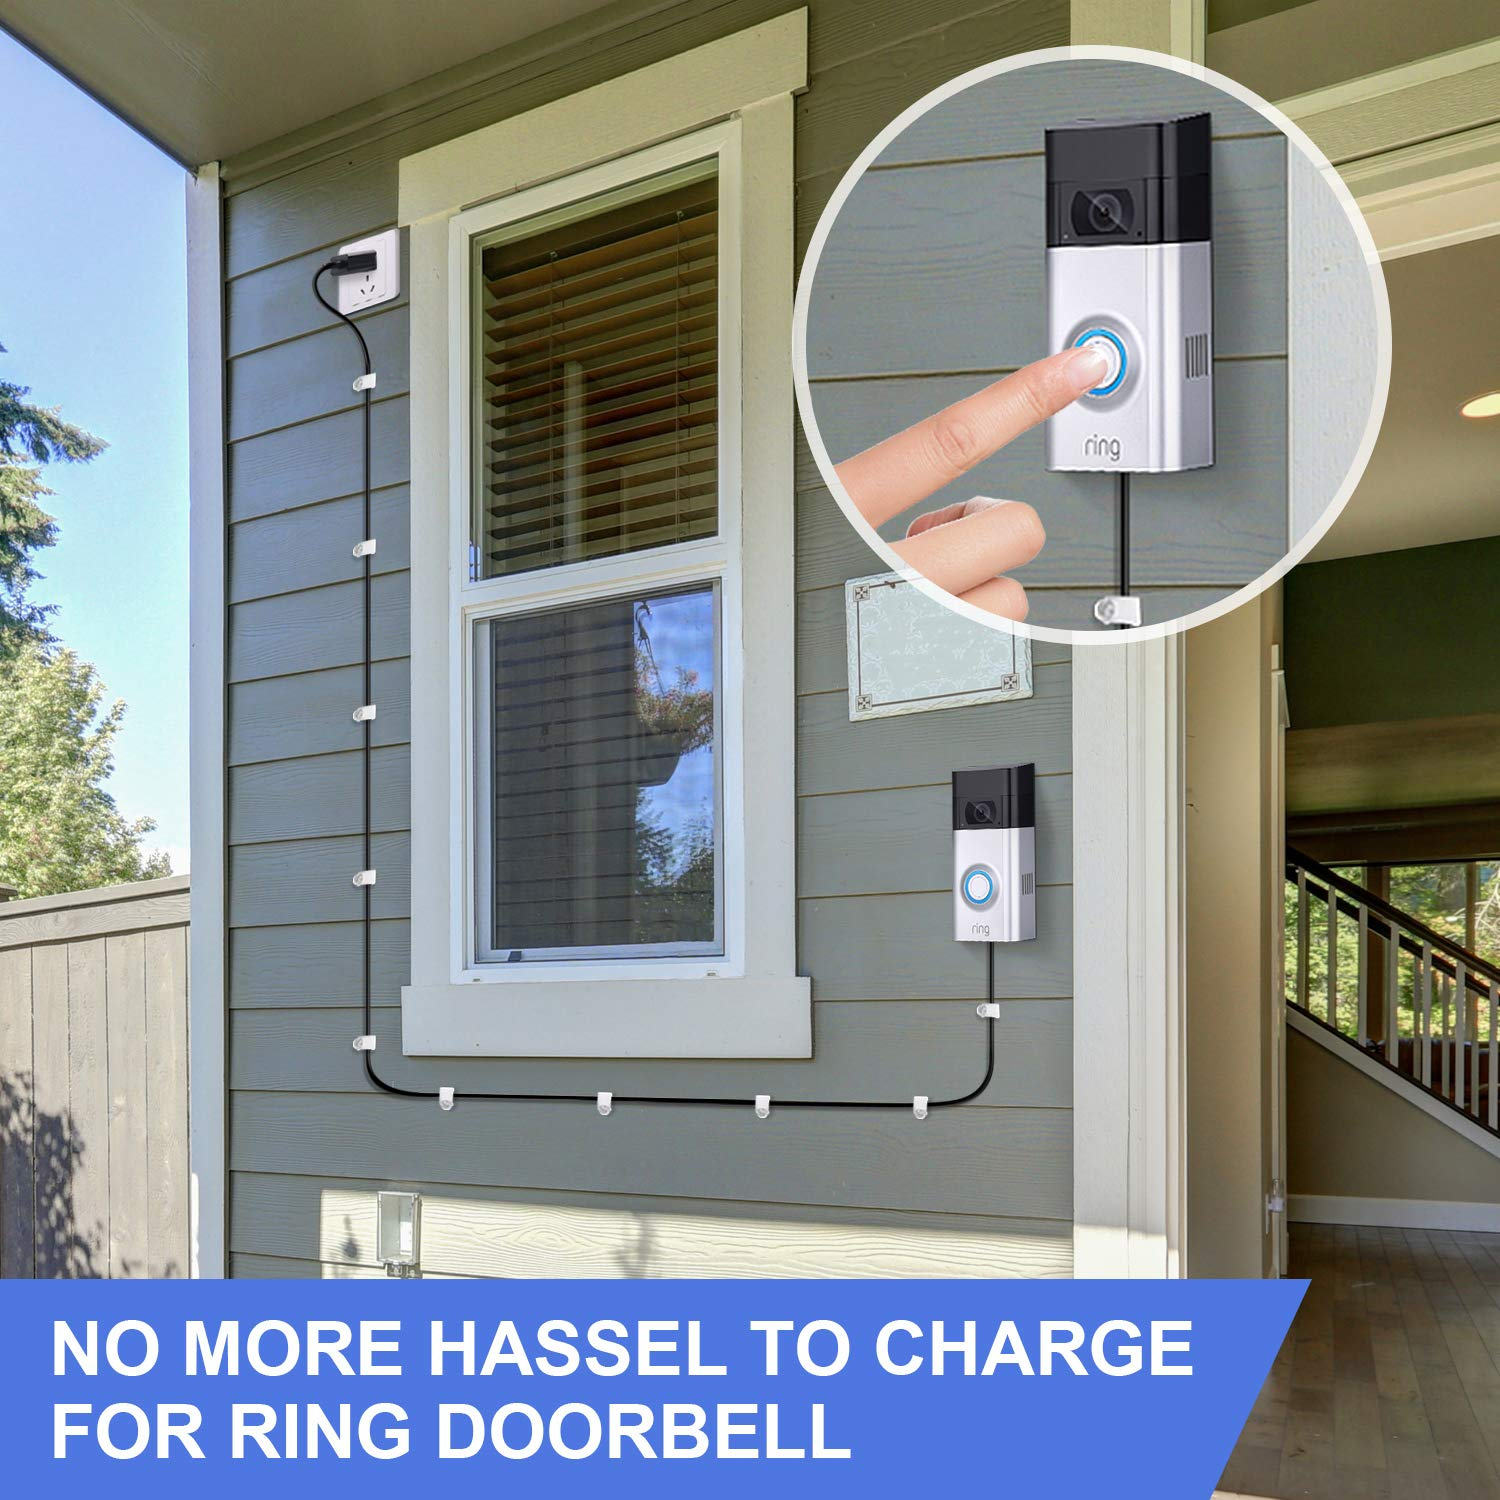 Power Supply Adapter Charger for Ring Doorbell 1 Power Adapter and 16 ft// 5 m Charge Cable Compatible with Ring Video Doorbell 1 to Continuously Power Your Doorbell